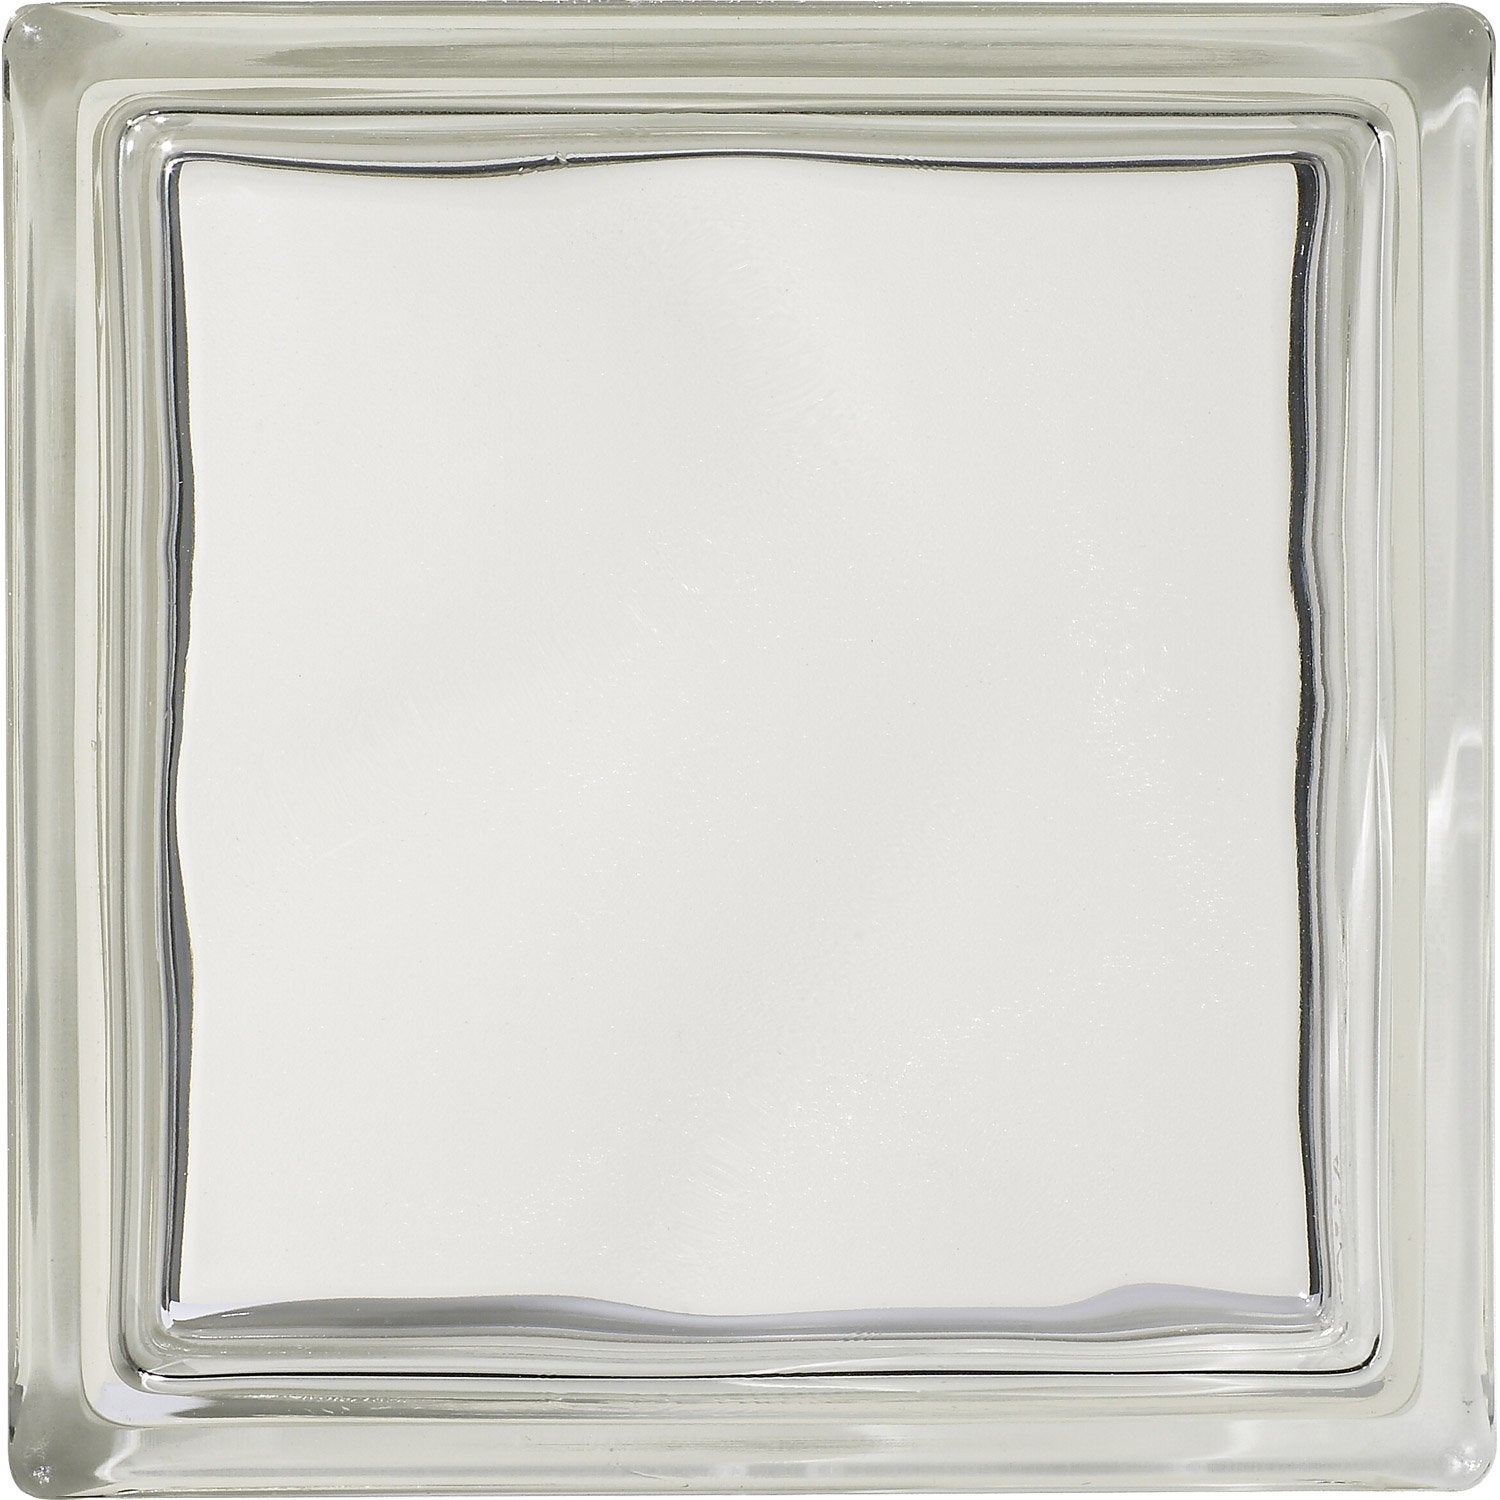 Brique de verre transparent lisse double face leroy merlin - Coupe de verre leroy merlin ...